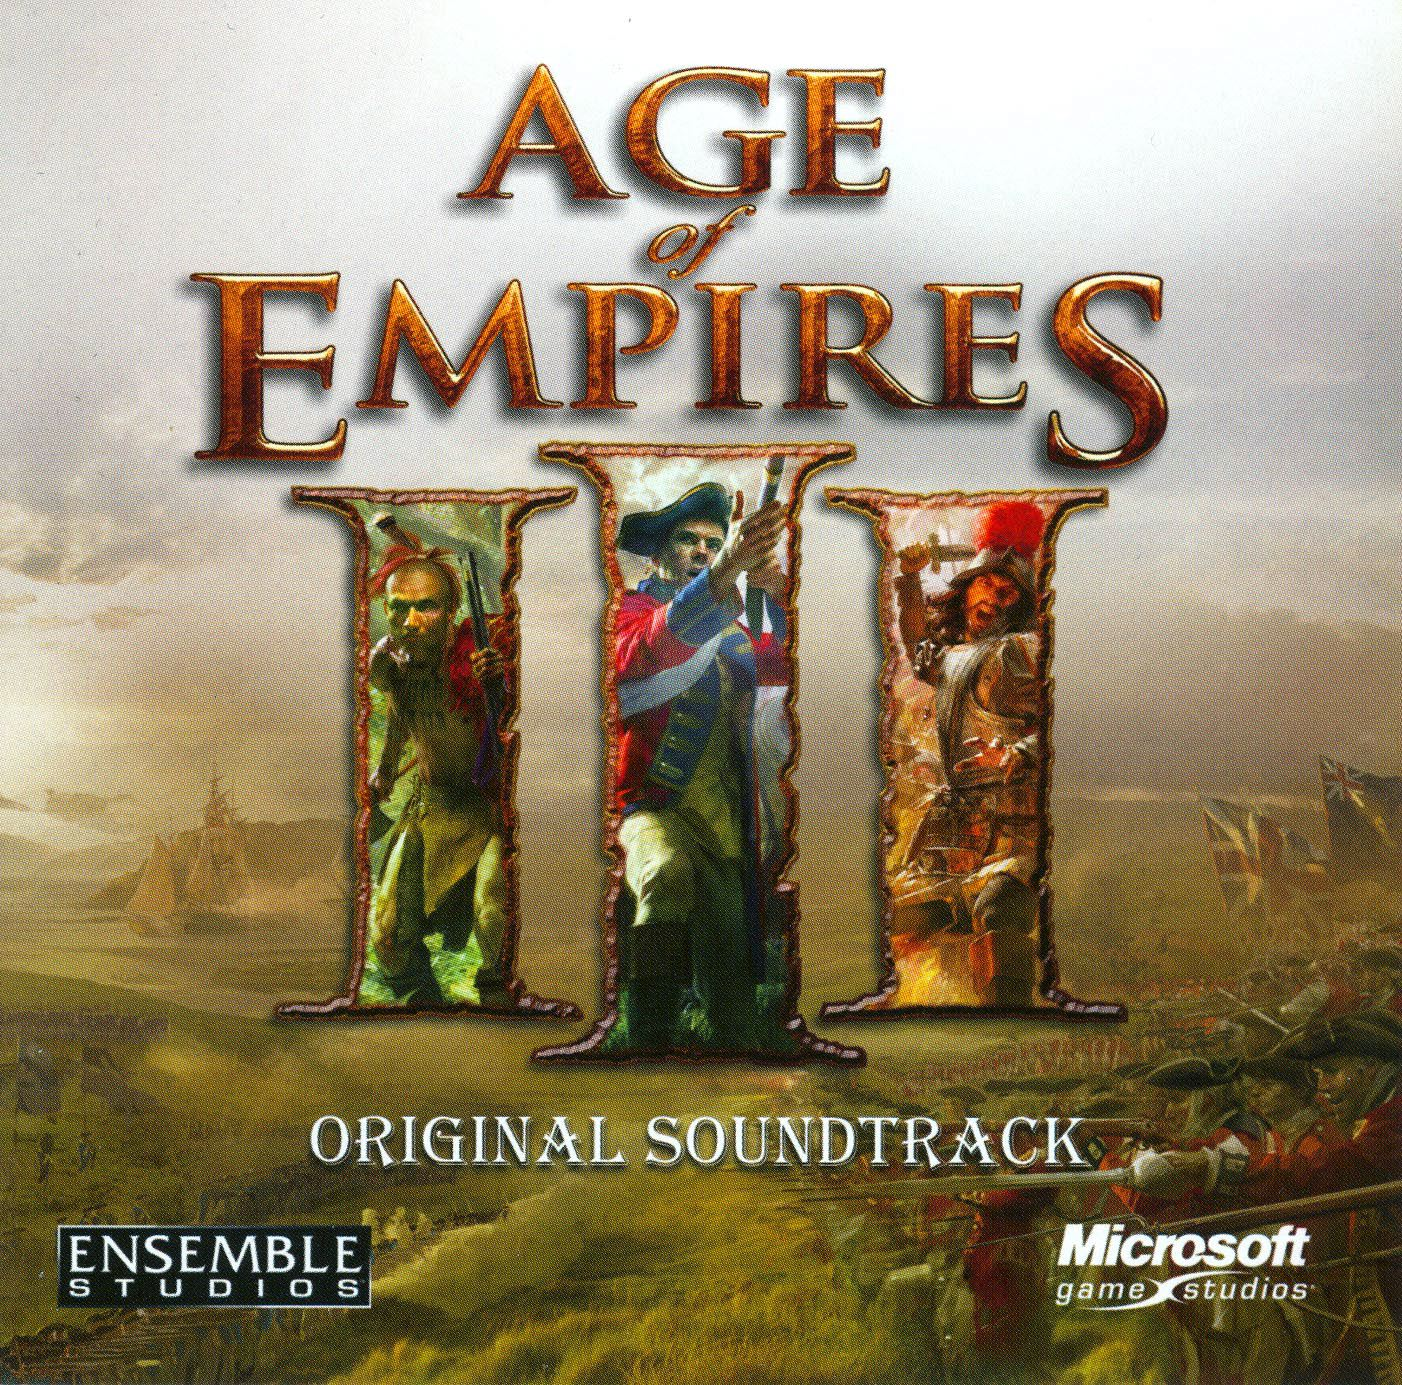 Free download age of empire trial version